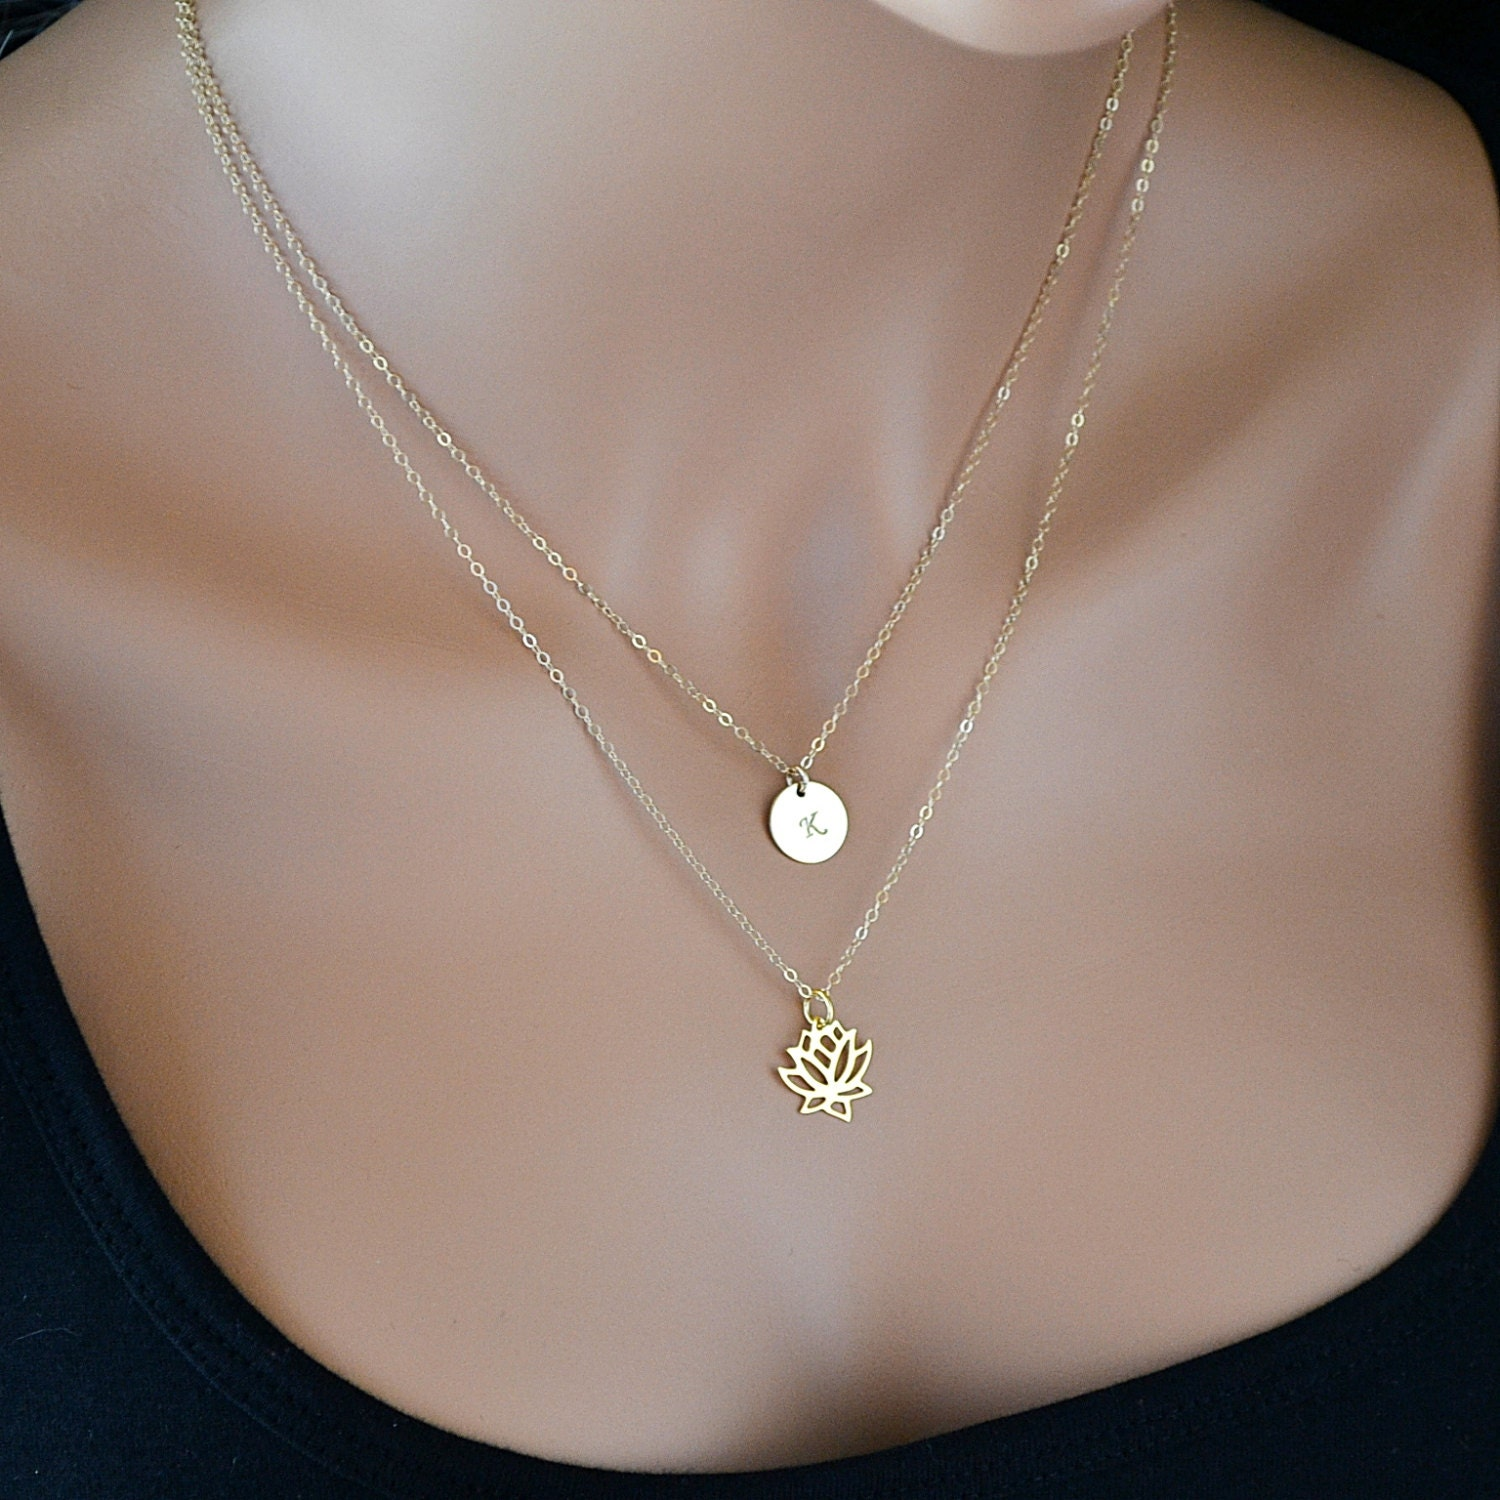 lotus necklace gold layered necklace initial necklace gold